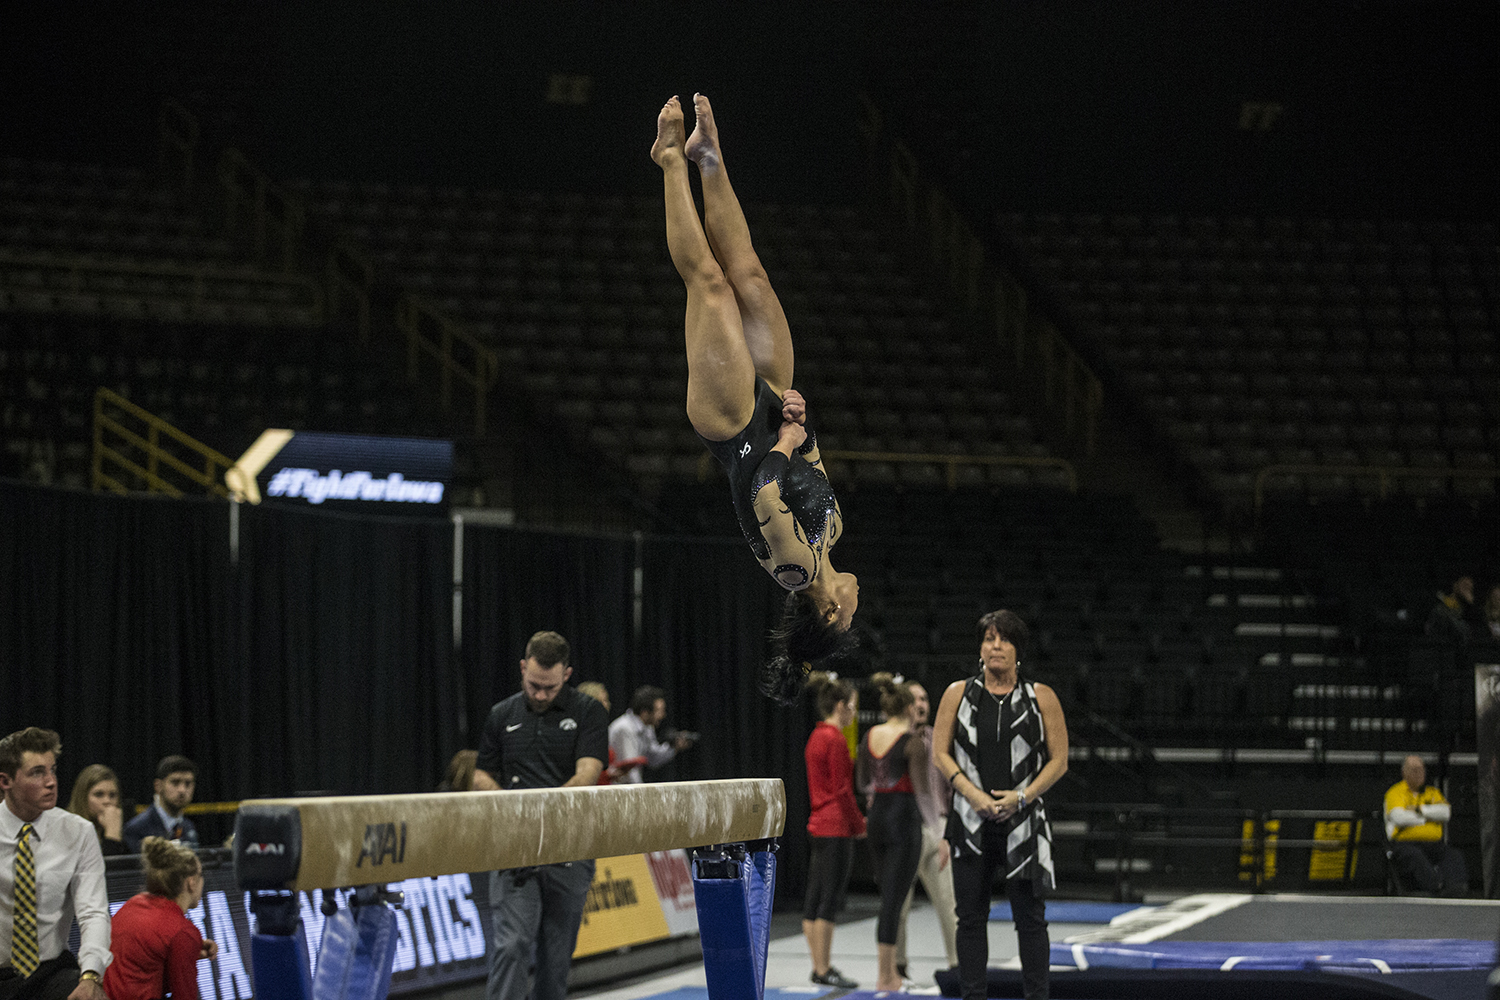 Iowa+gymnast+Misty-Jade+Carlson+performs+on+the+beam+during+women%27s+gymnastics+vs.+SEMO+at+Carver-Hawkeye+Arena+on+Friday%2C+January+11%2C+2019.+The+GymHawks+defeated+the+Redhawks+194.700-180.925.+